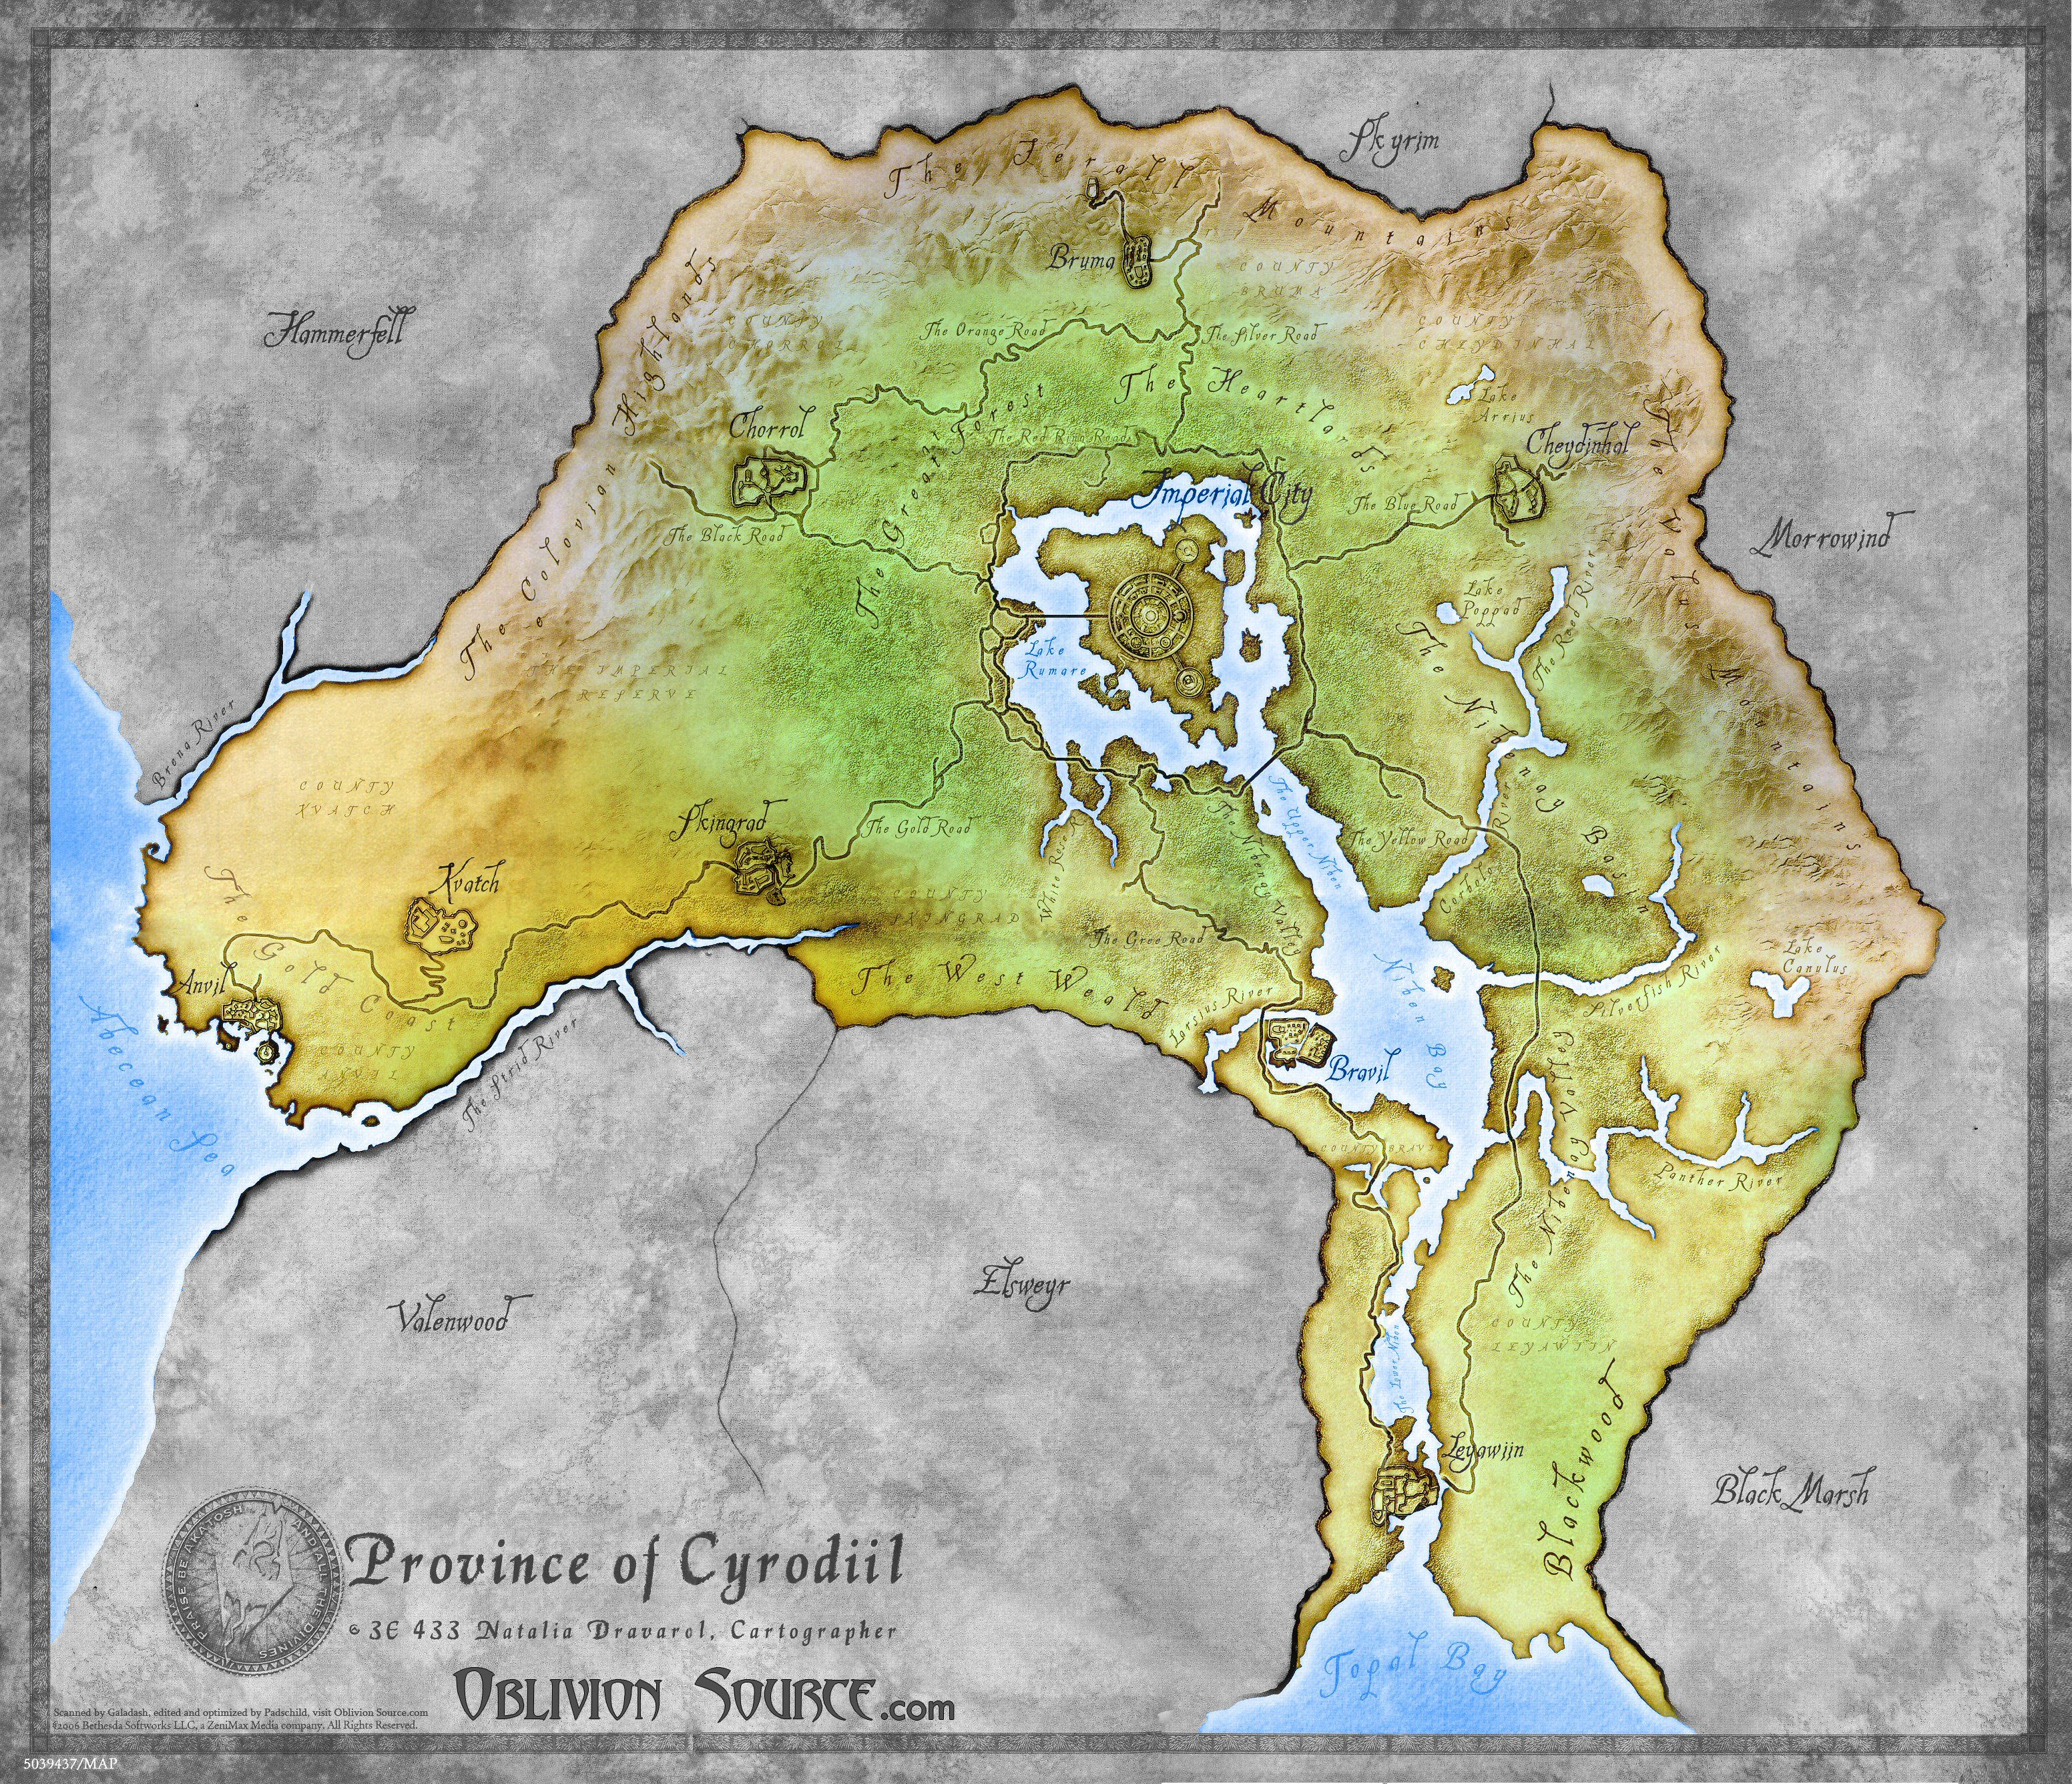 Oblivion - Province of Cyrodiil map. I love Skyrim, but I think Cyrodiil will always be my home. Nothing like the Imperial City at dusk...